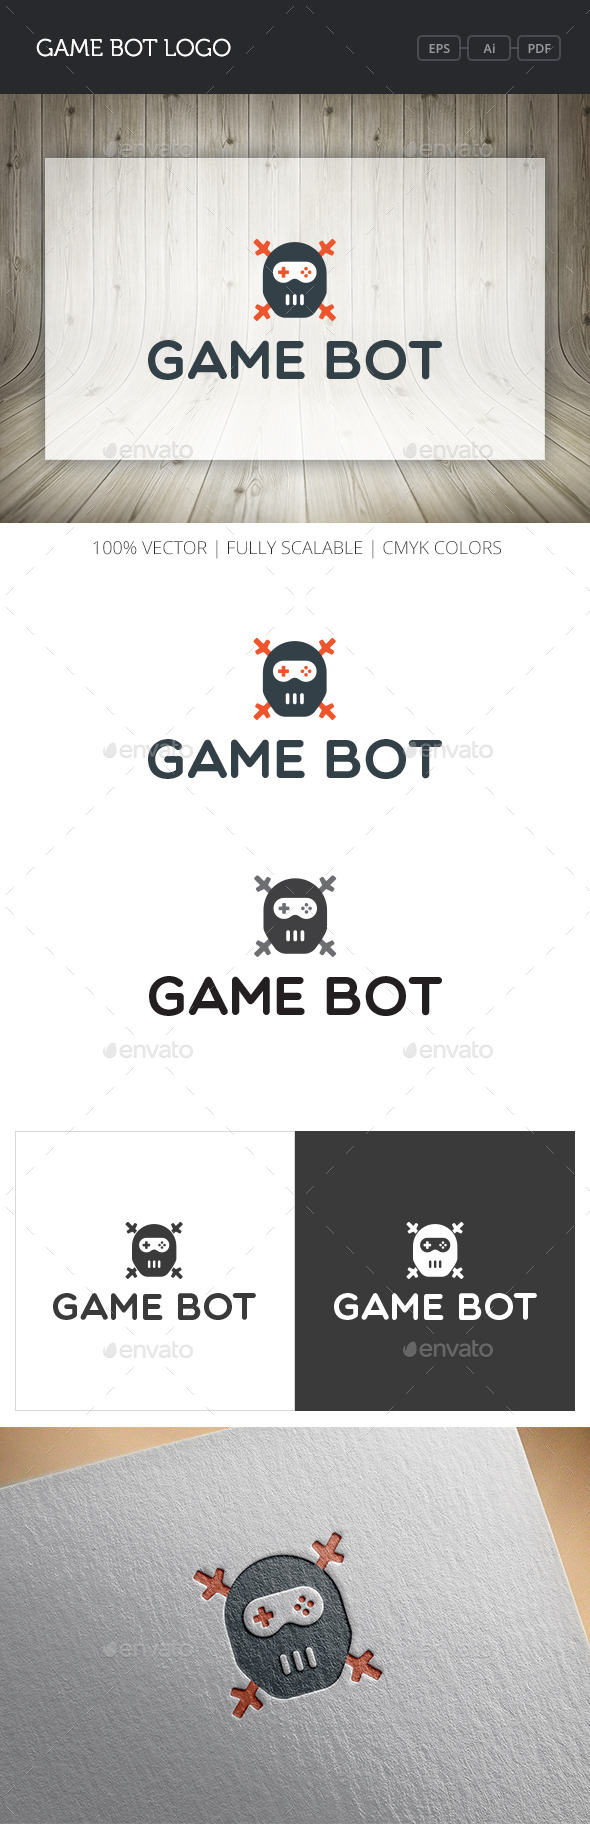 Game Bot Logo